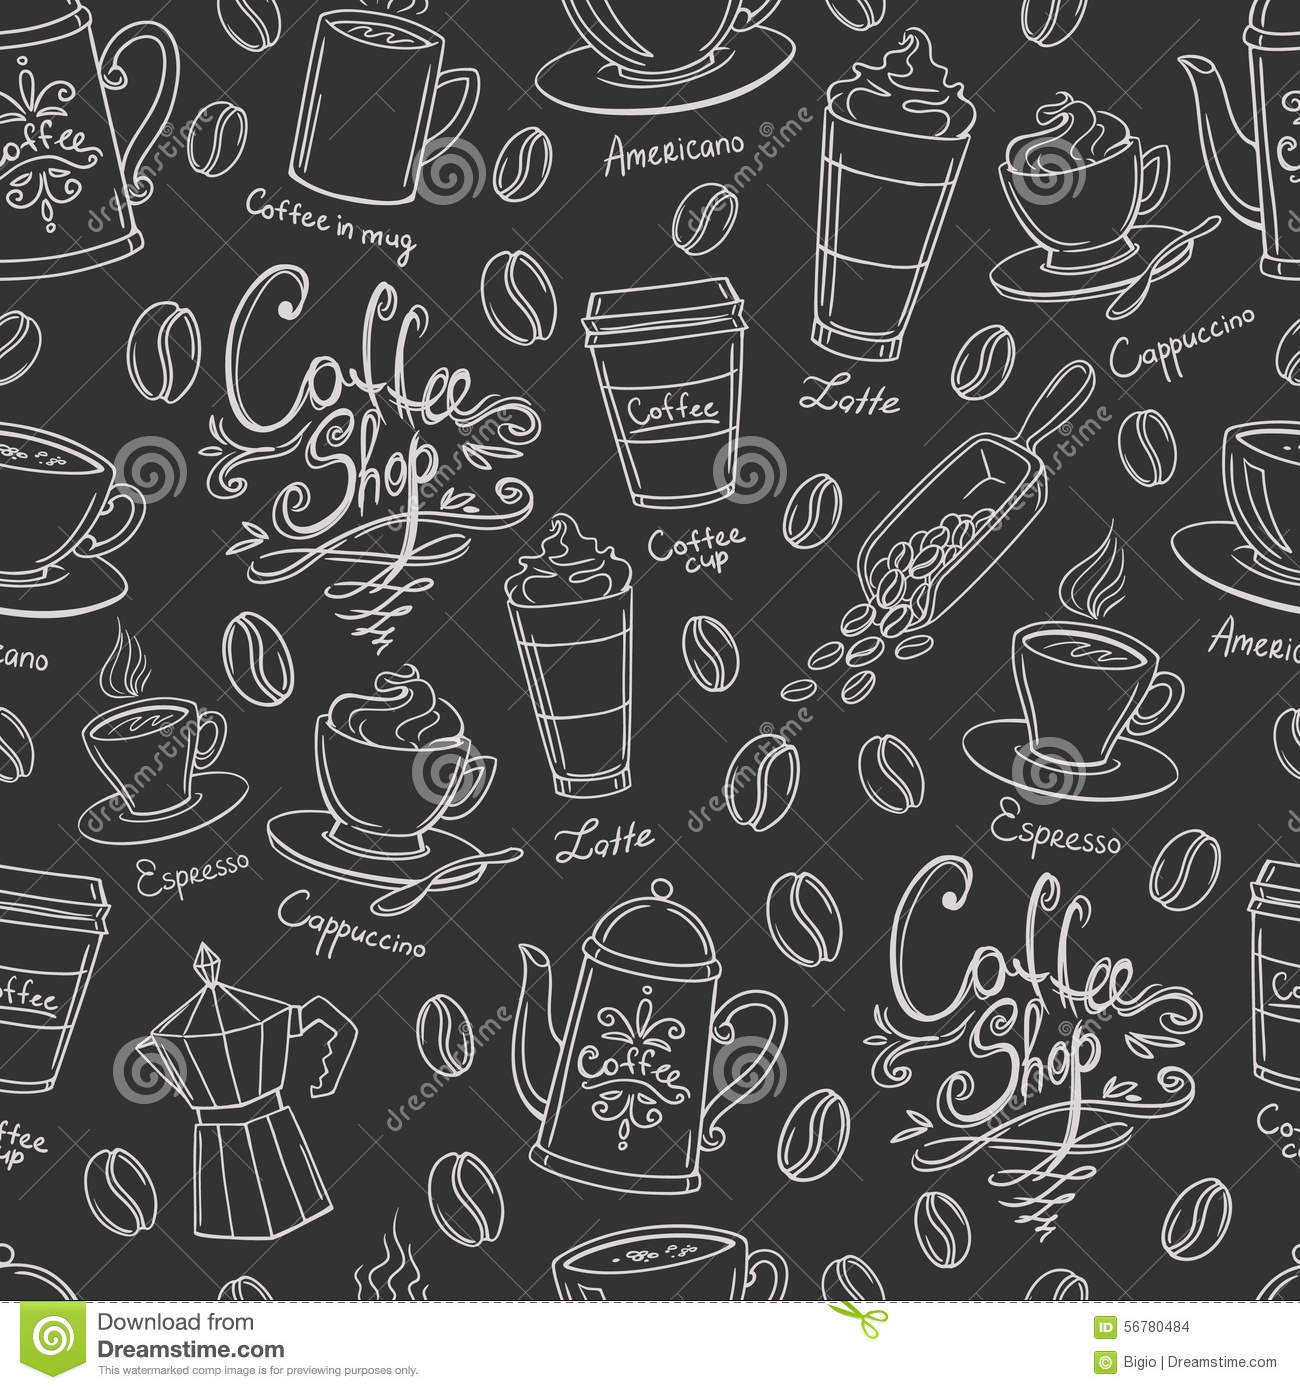 Coffee Shop Design Seamless Pattern. Stock Vector - Image ...